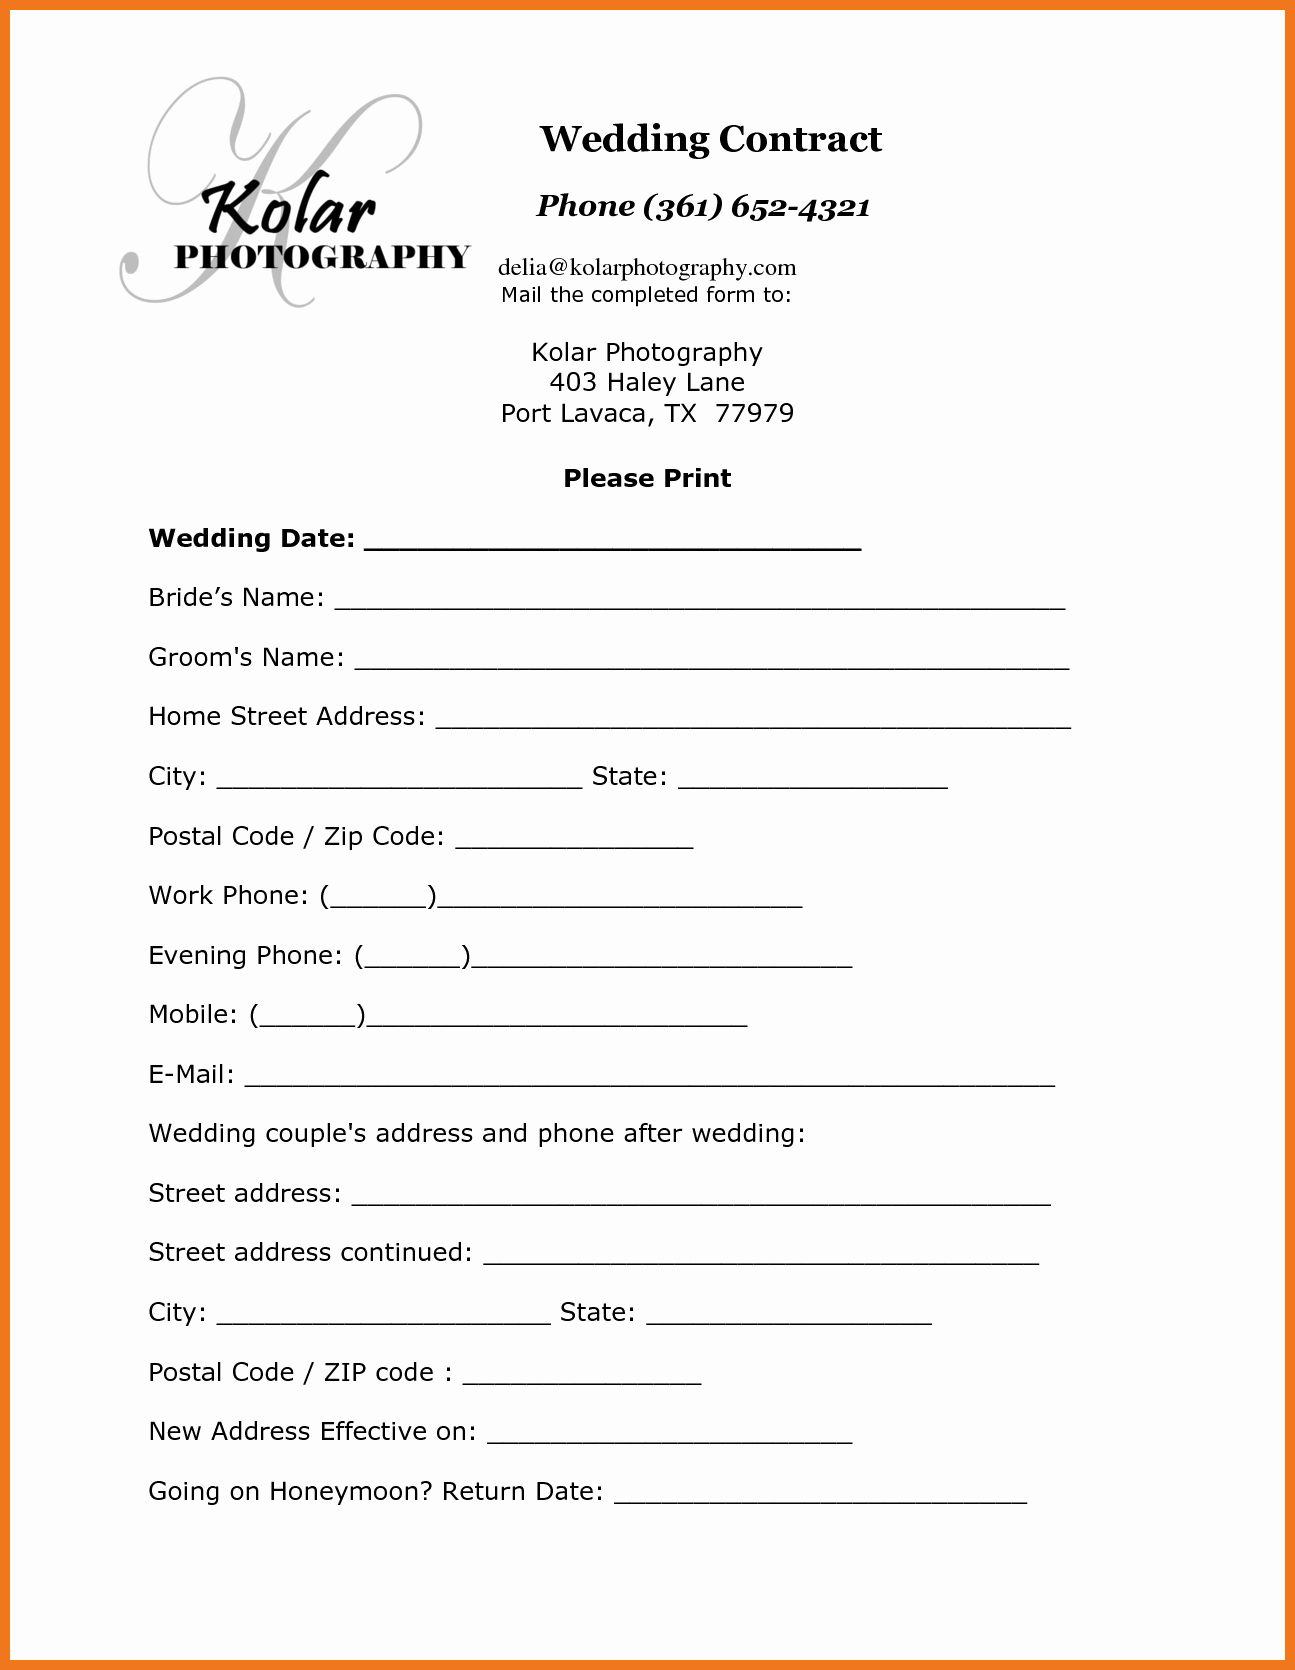 Simple Wedding Photography Contract Template Best Of 1 2 Wedding Contract Template